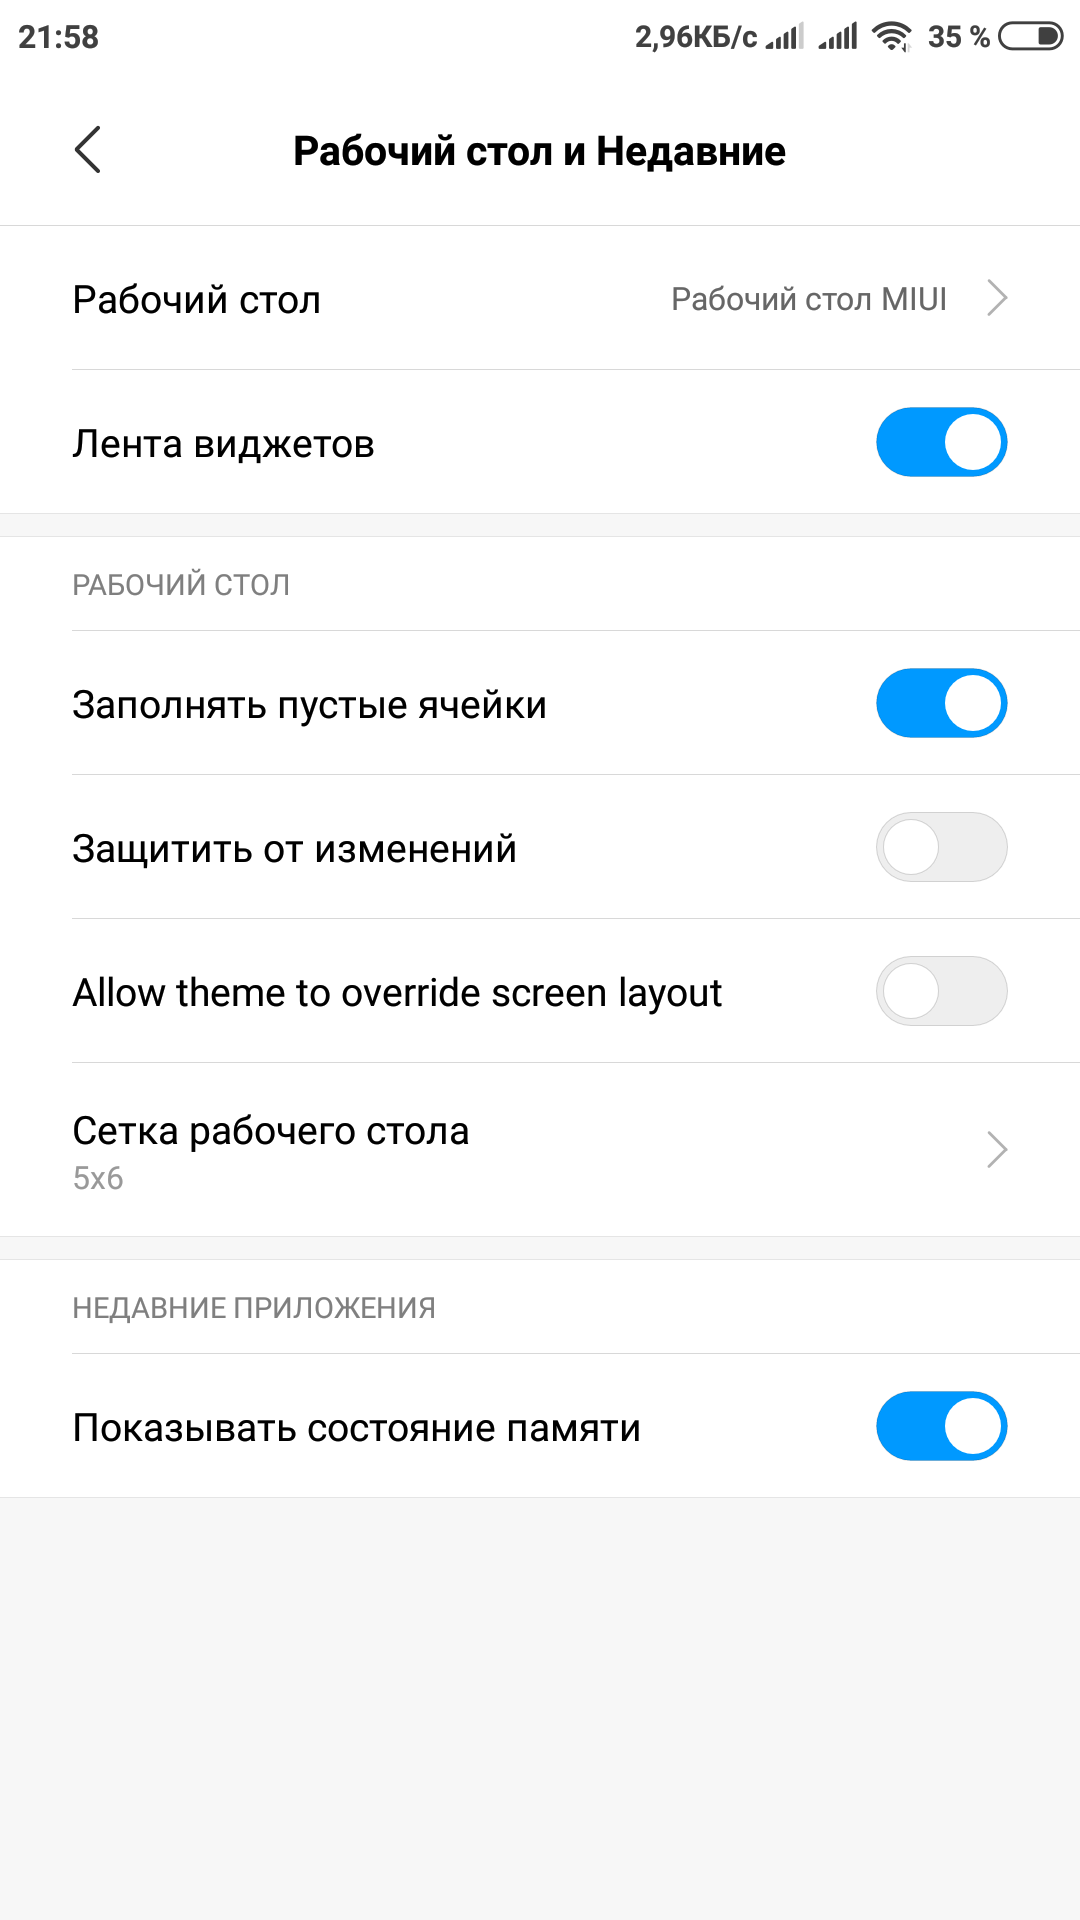 Screenshot_2018-09-15-21-59-00-029_com.miui.home.png